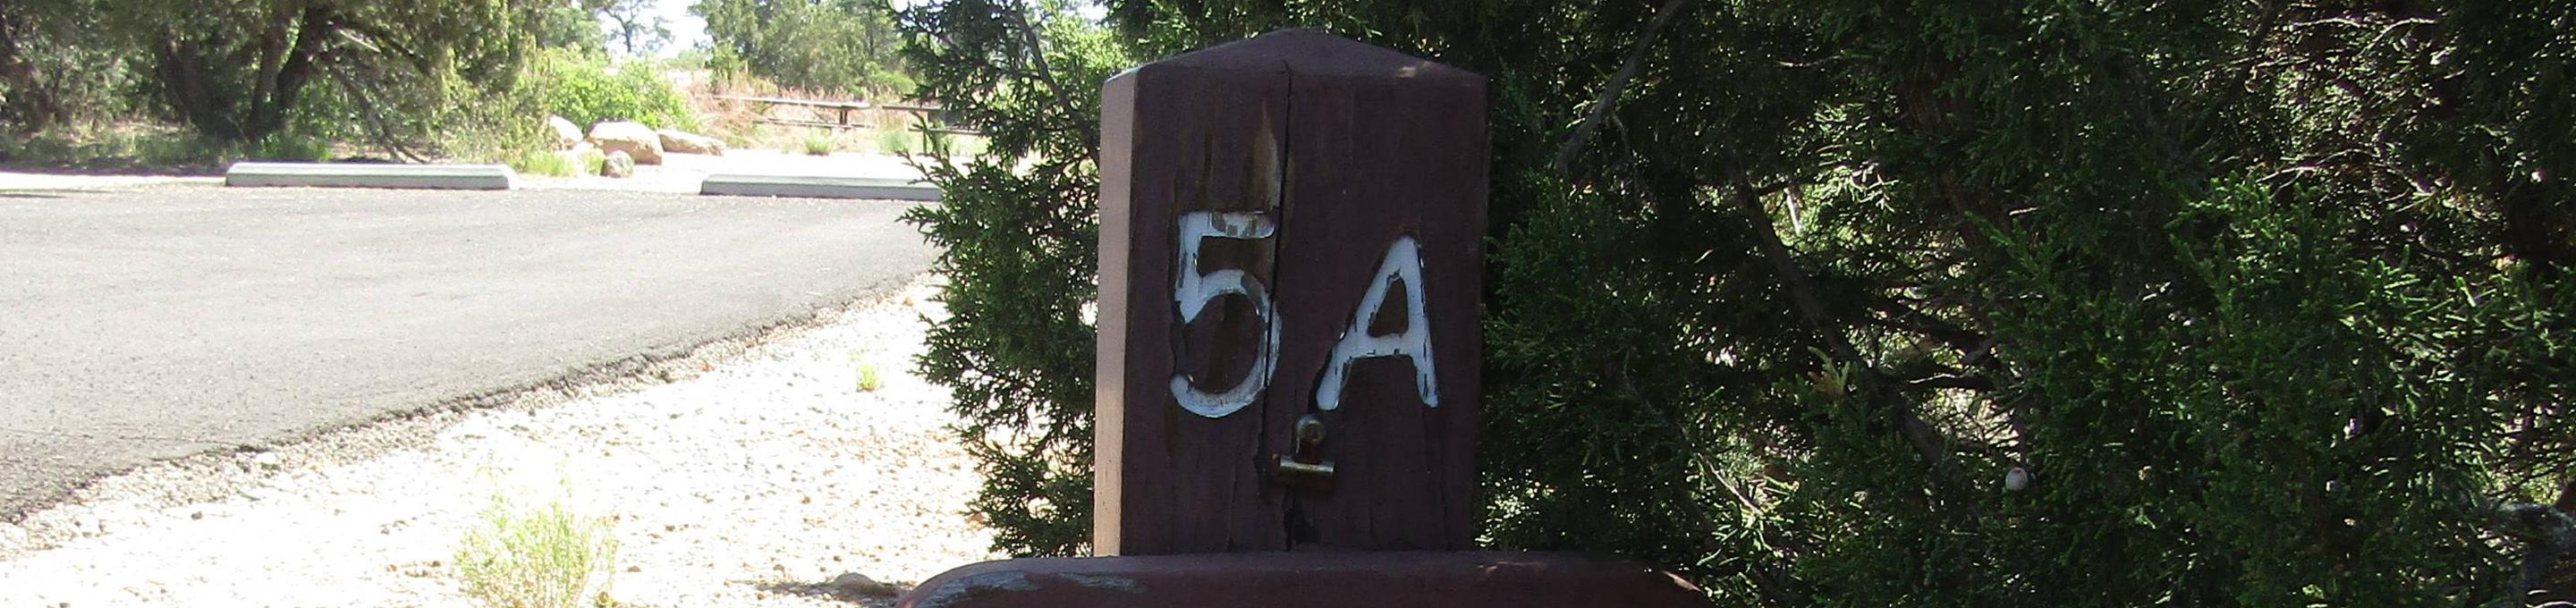 """Brown wooden sign with """"5A"""" engraved in front of vegetation and a paved parking area.Group site 005 in Juniper Family Campground."""